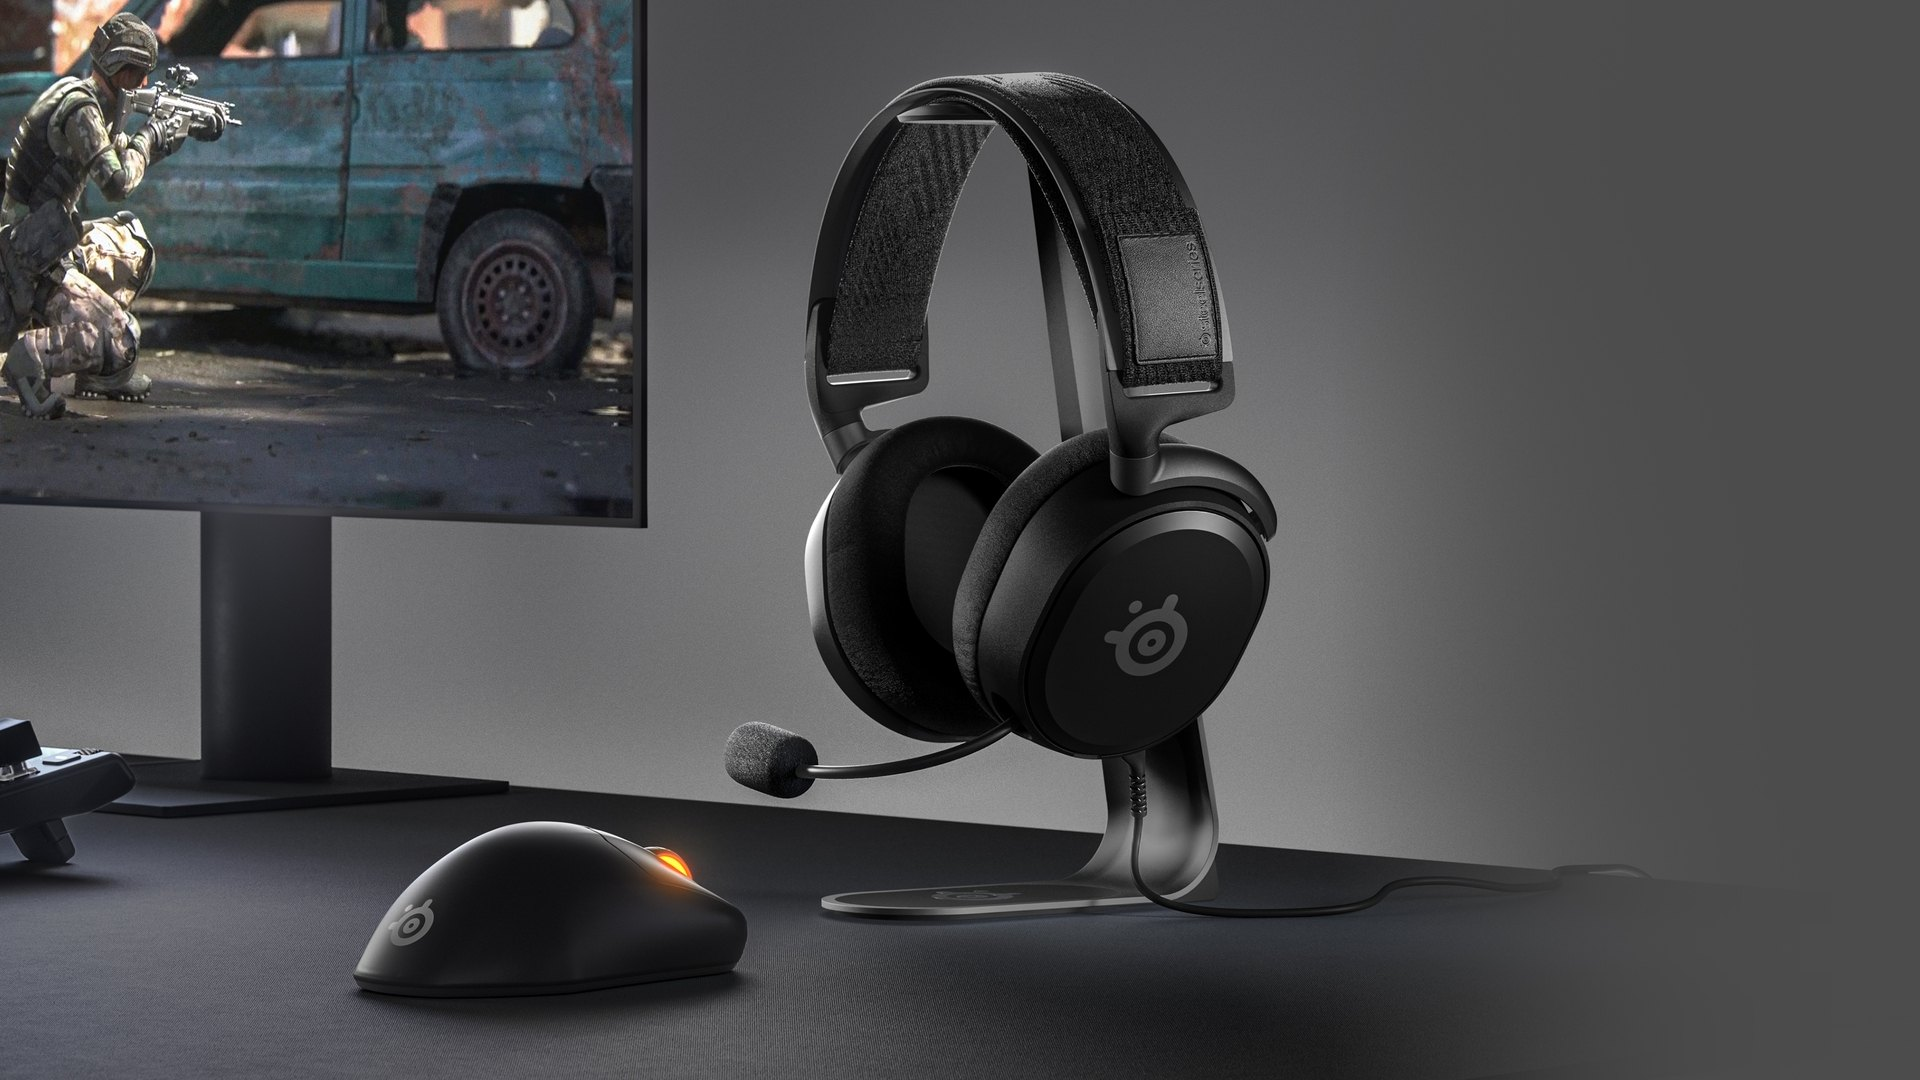 A sleek desktop setup with an Arctis Prime headset and Prime Wireless mouse.